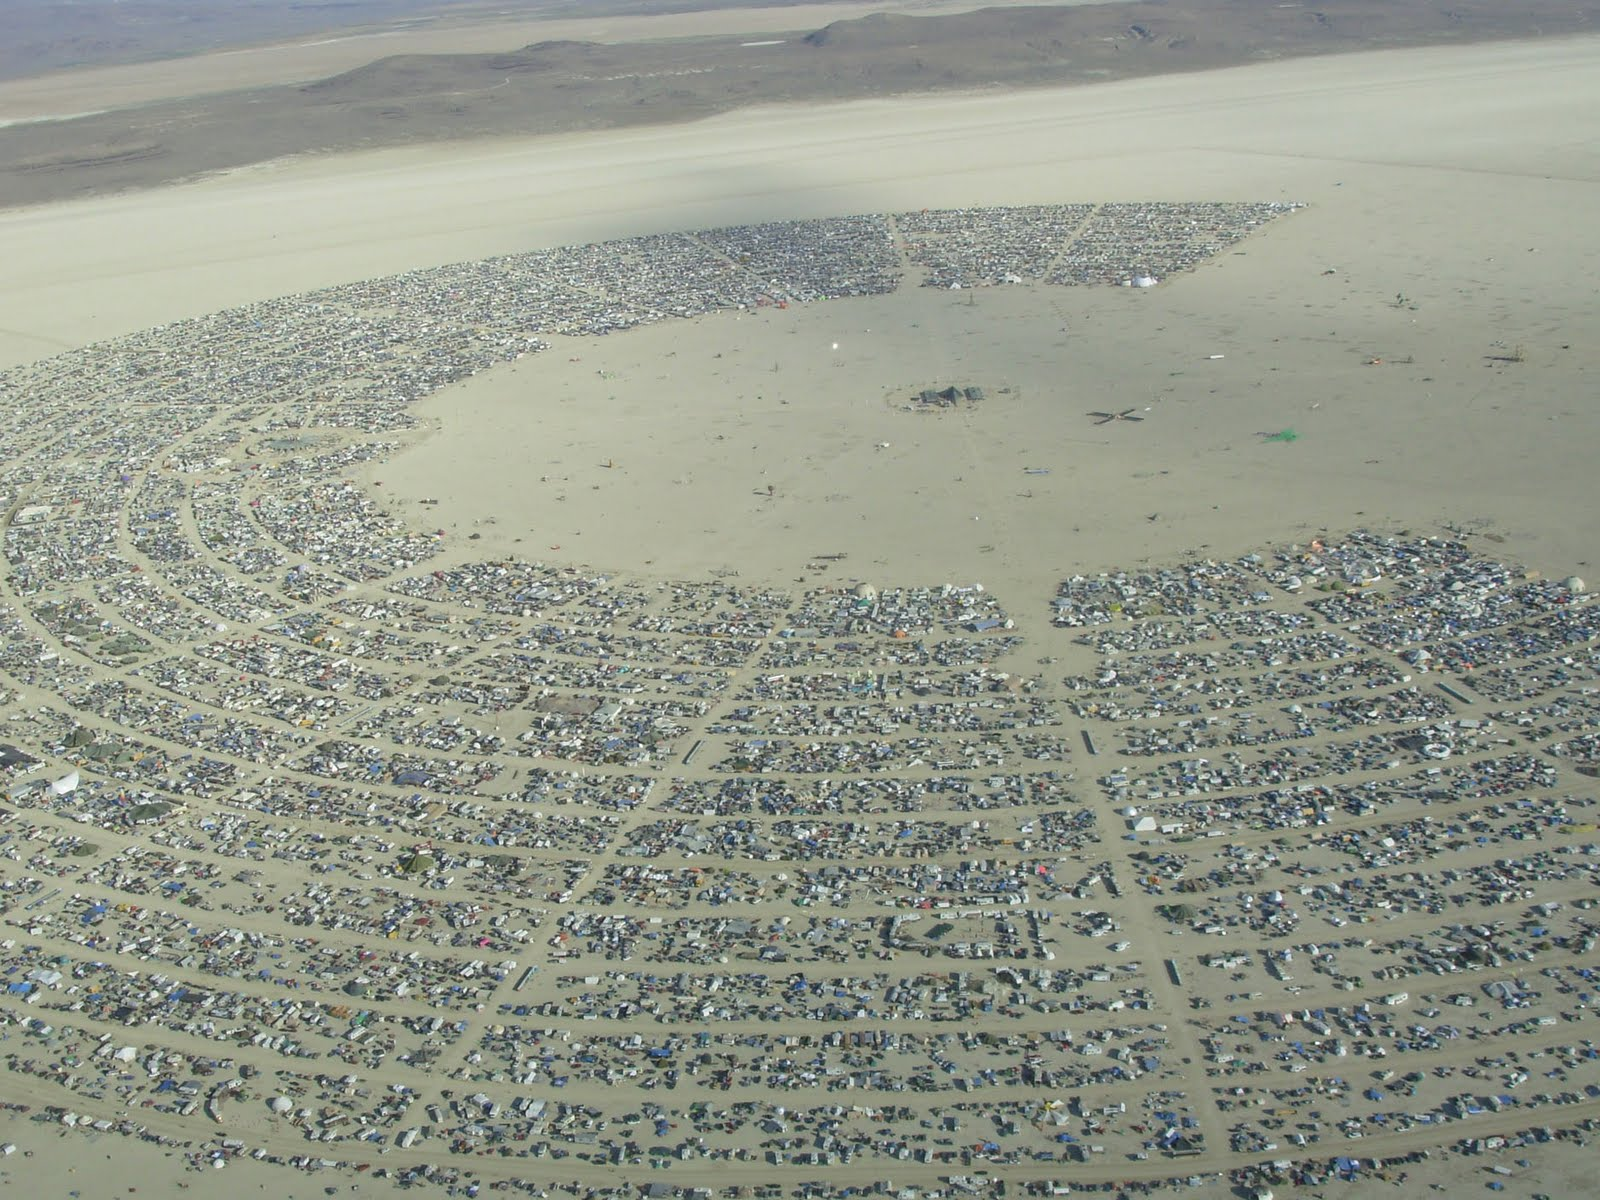 Black Rock City 2006